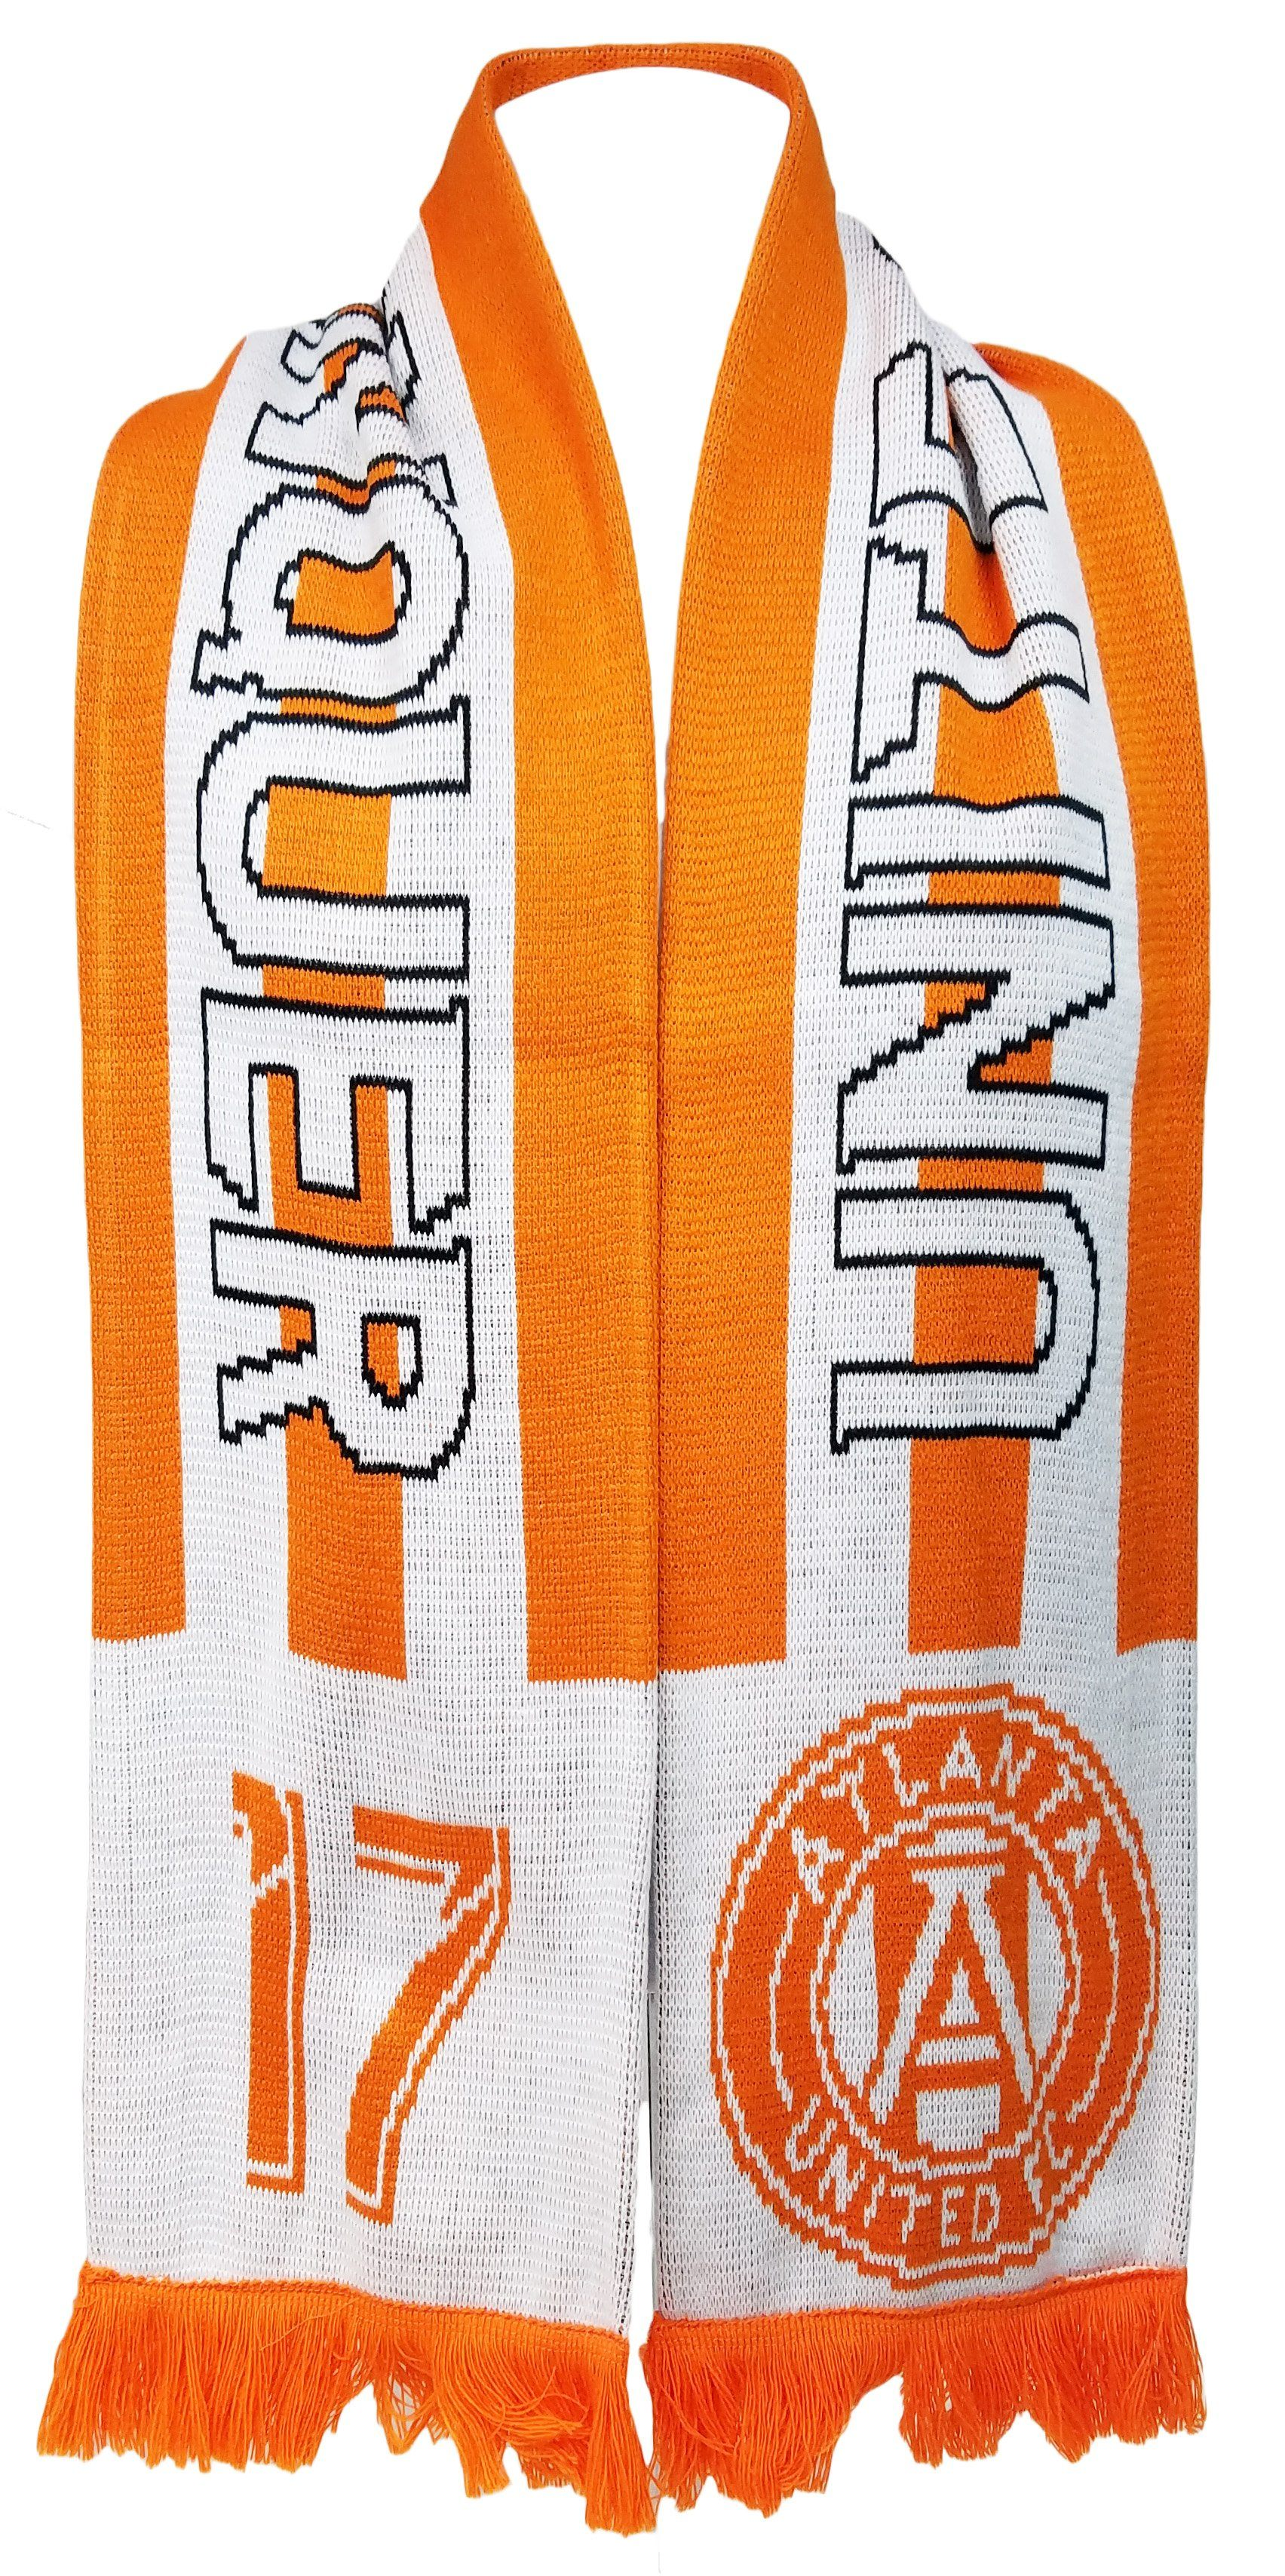 ATLANTA UNITED SCARF - #17 Fan Peach Edition